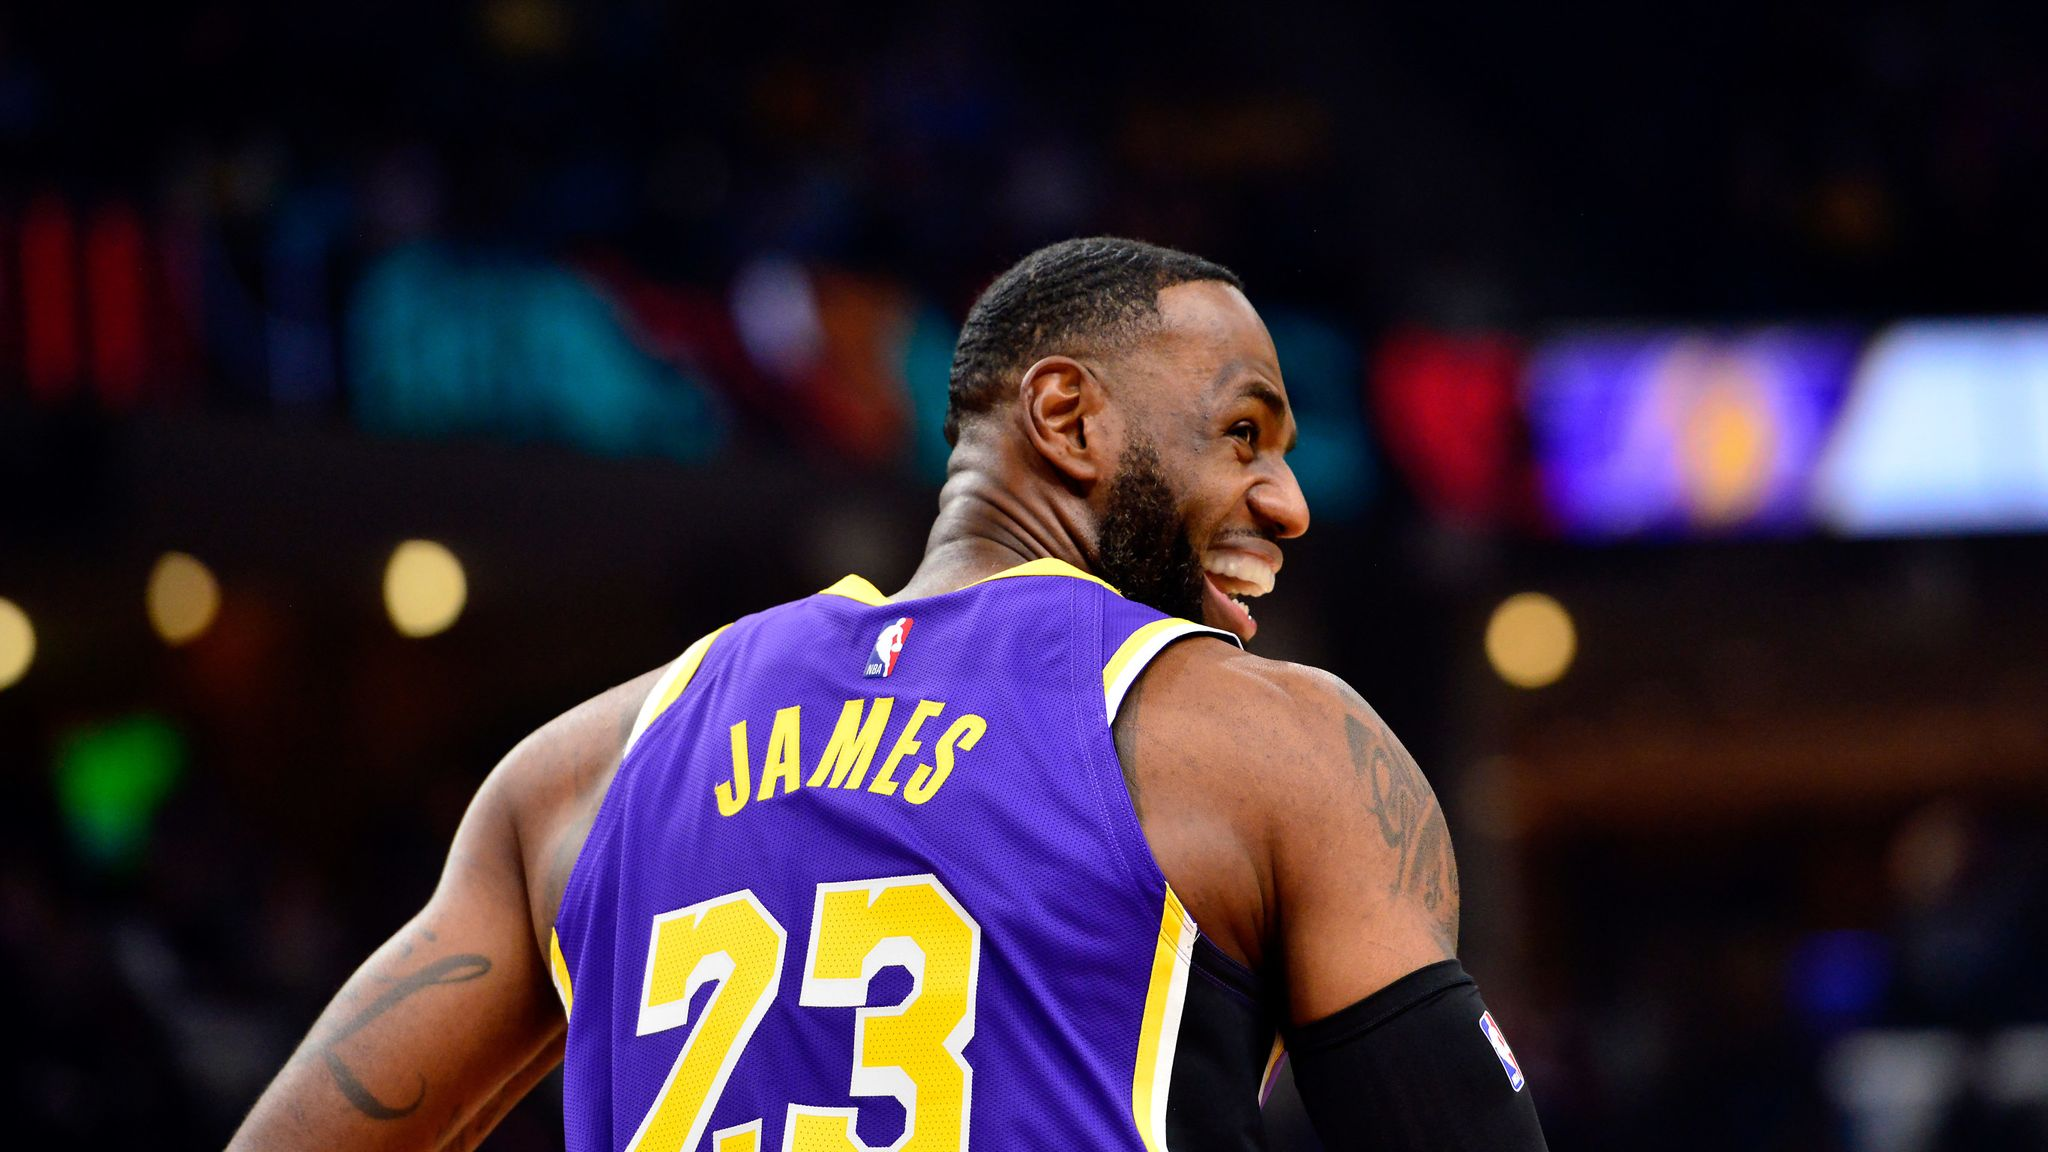 LeBron James scores 30 points as Lakers edge Grizzlies for seventh straight win